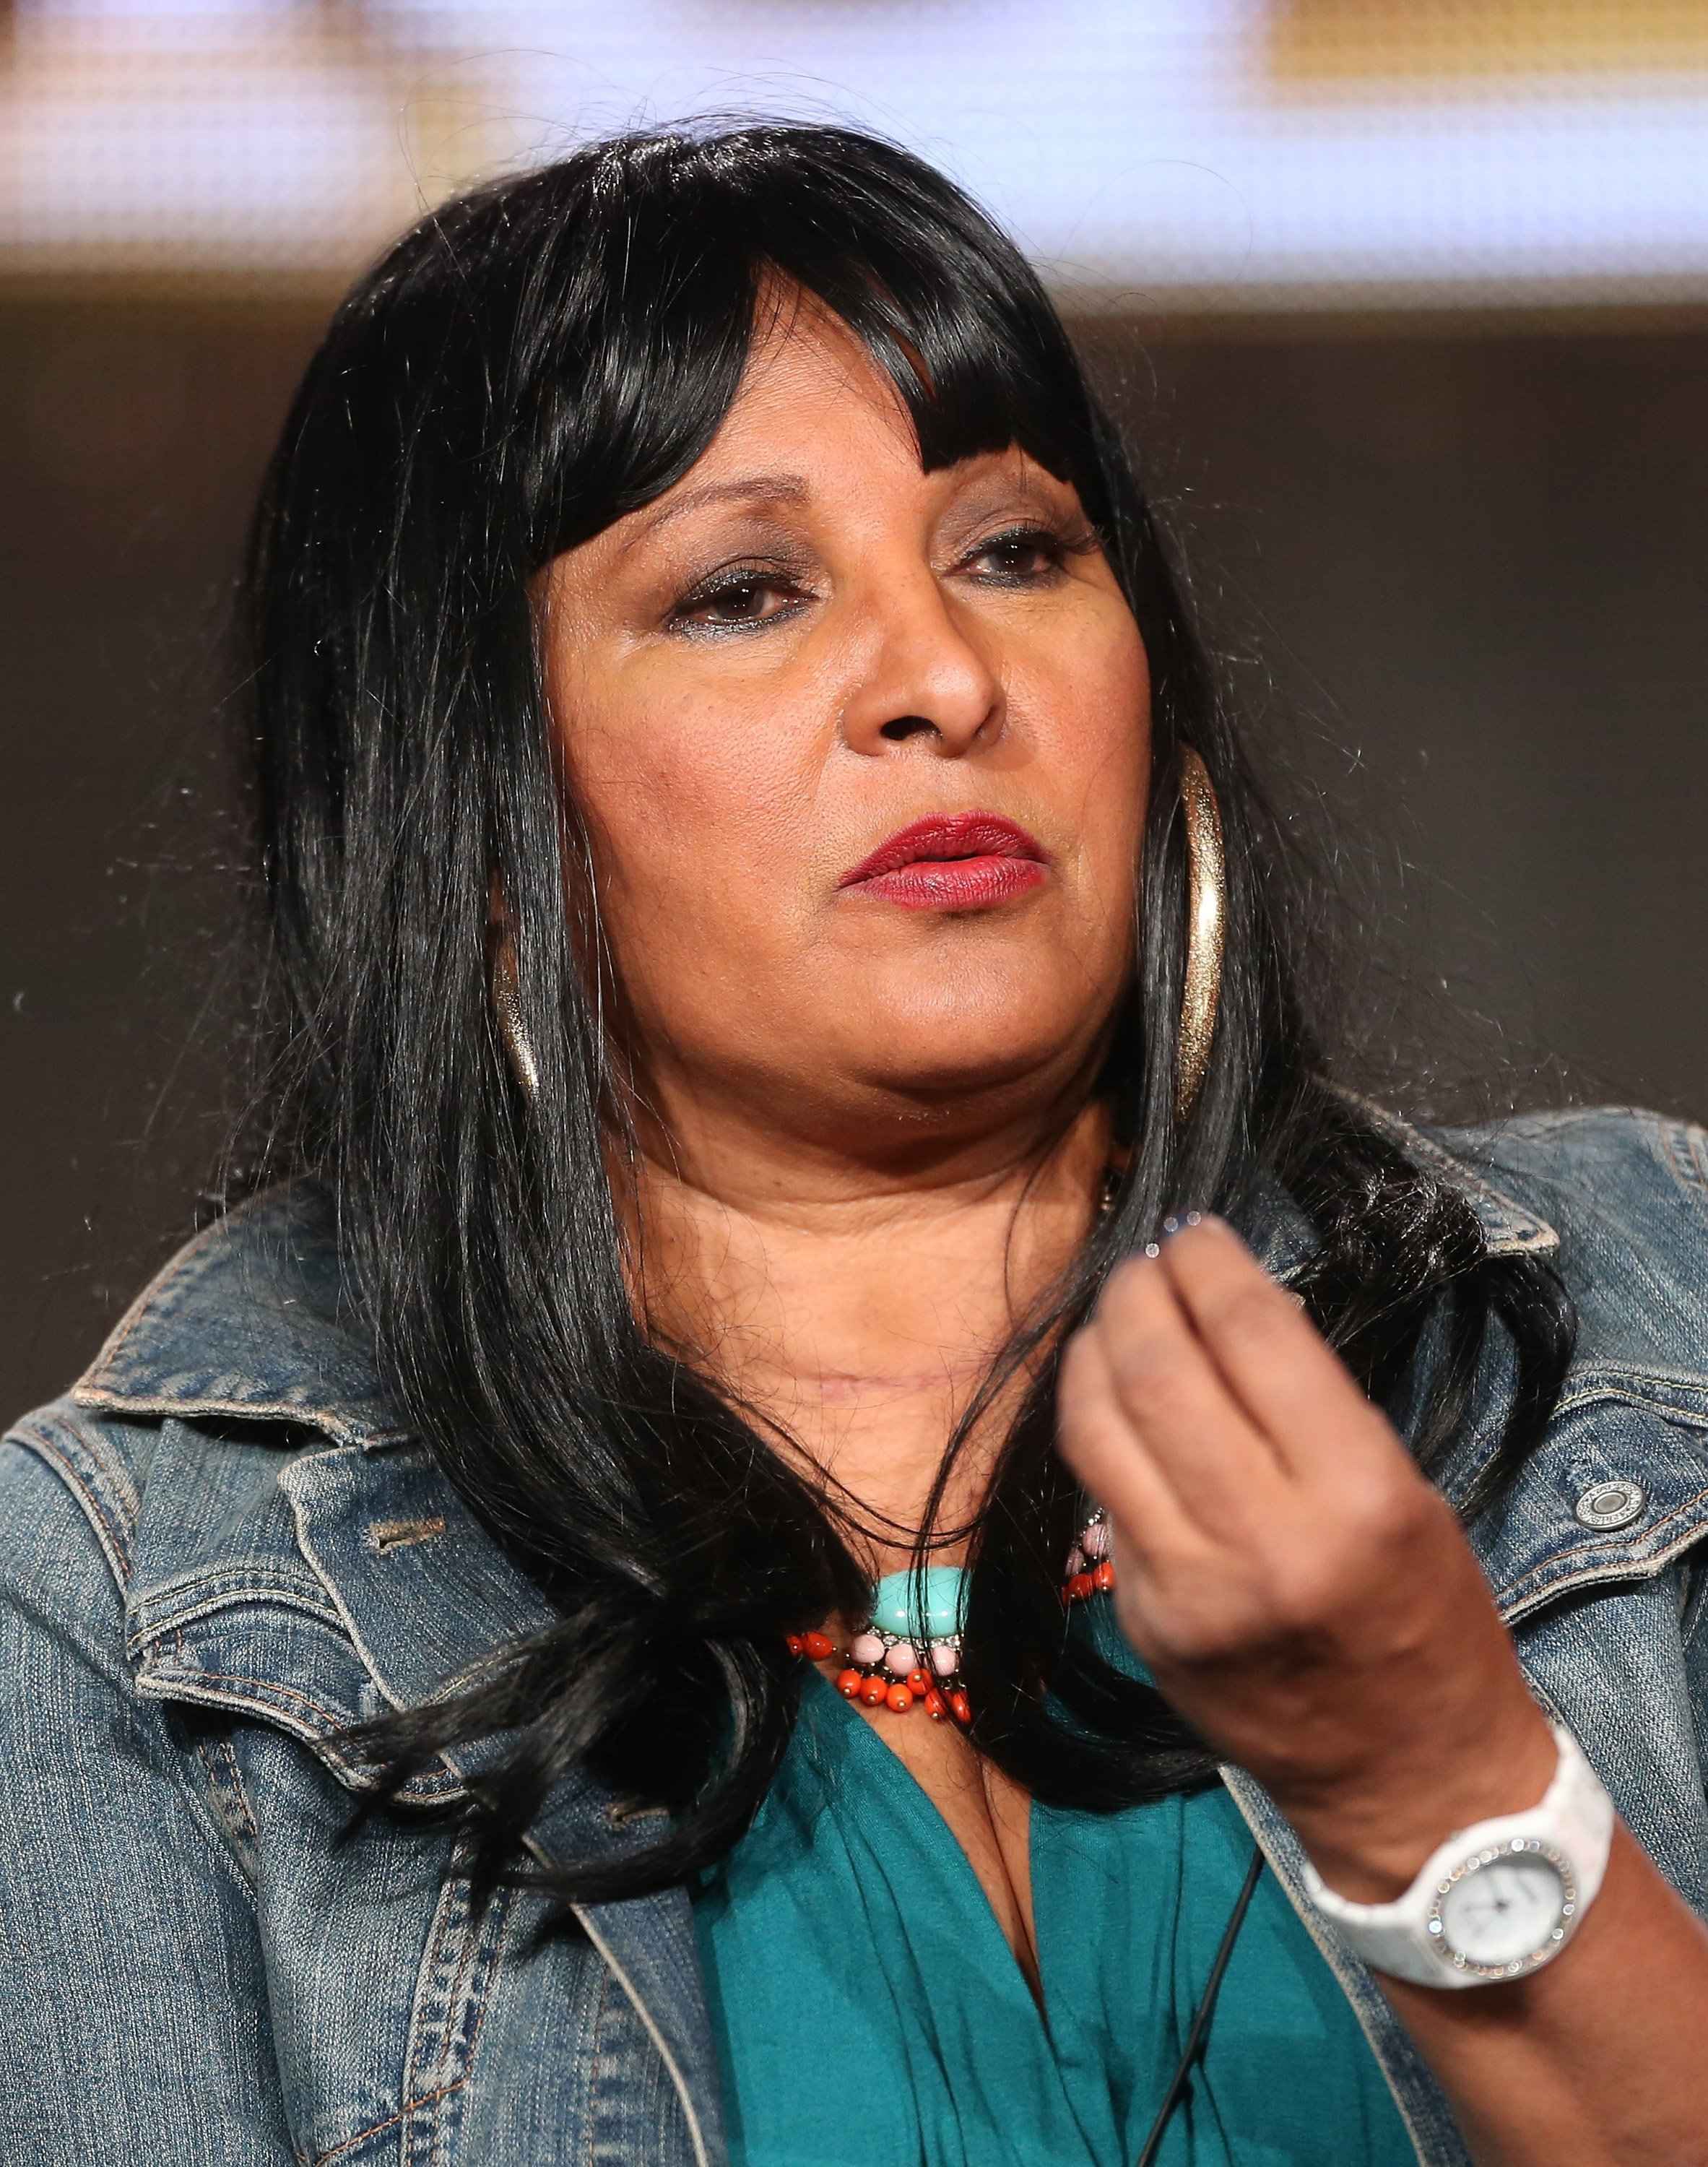 """Pam Grier speaking as part of the panel during """"Unsung Hollywood"""" at the 2014 Winter Television Critics Association tour on January 9, 2014 in Pasadena, California.  